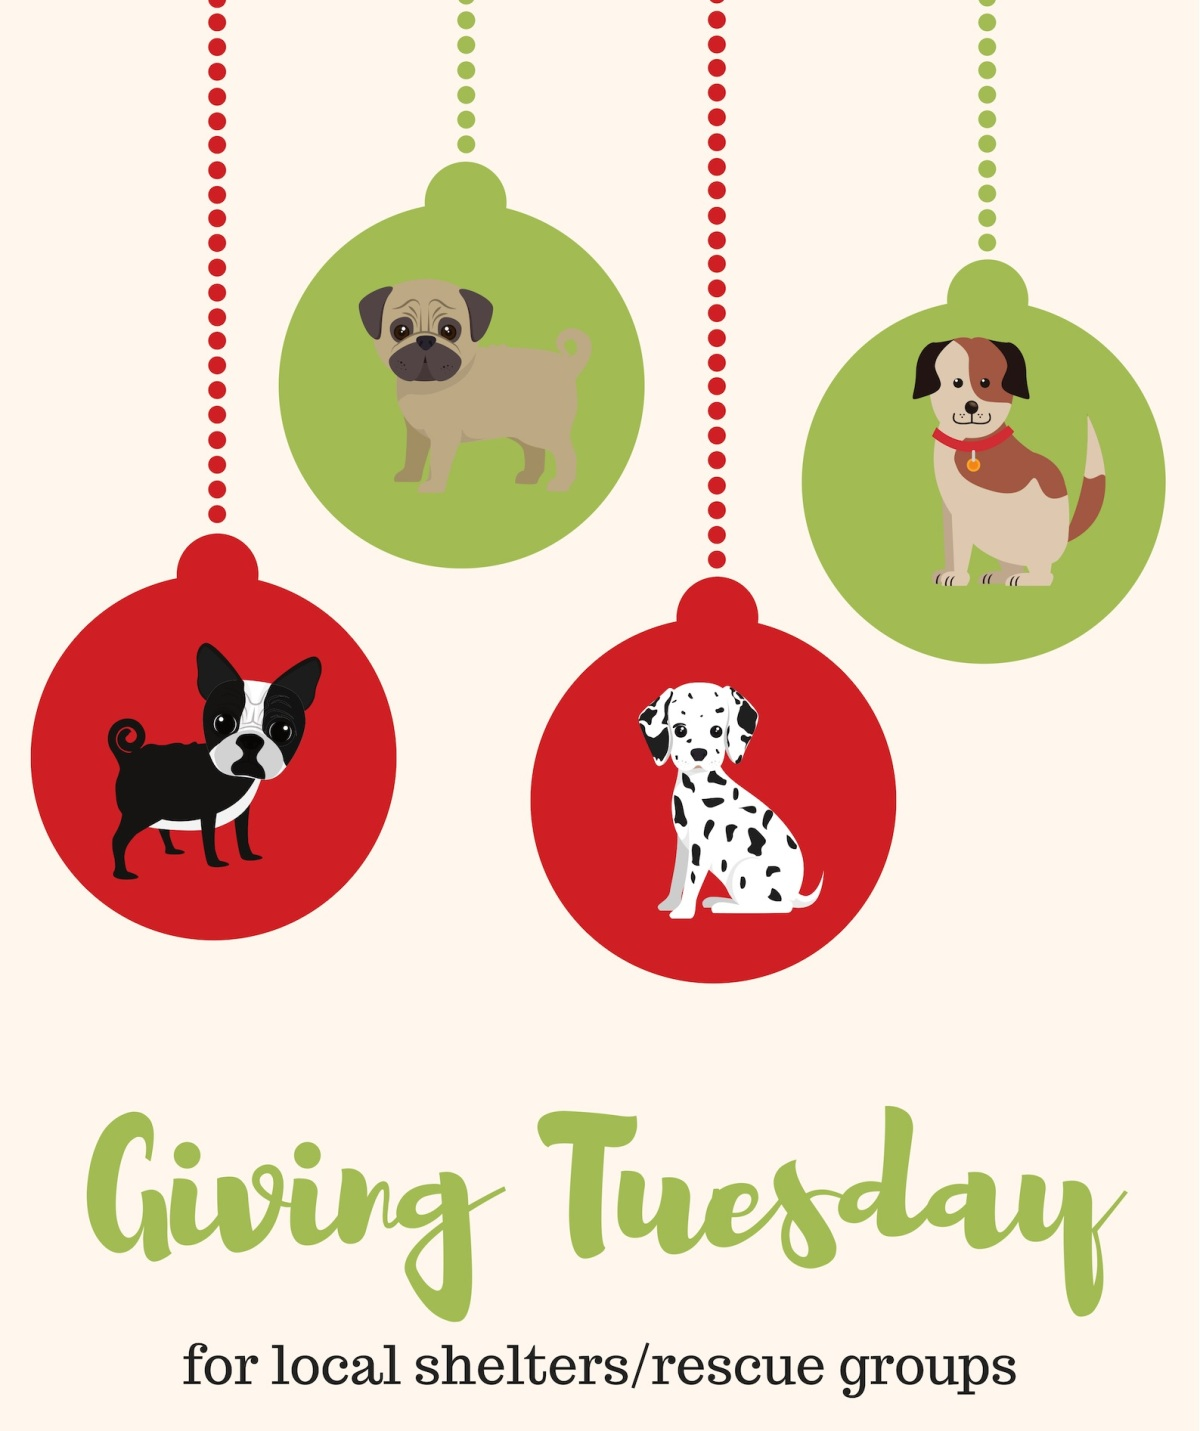 Ways to give back this #GivingTuesday